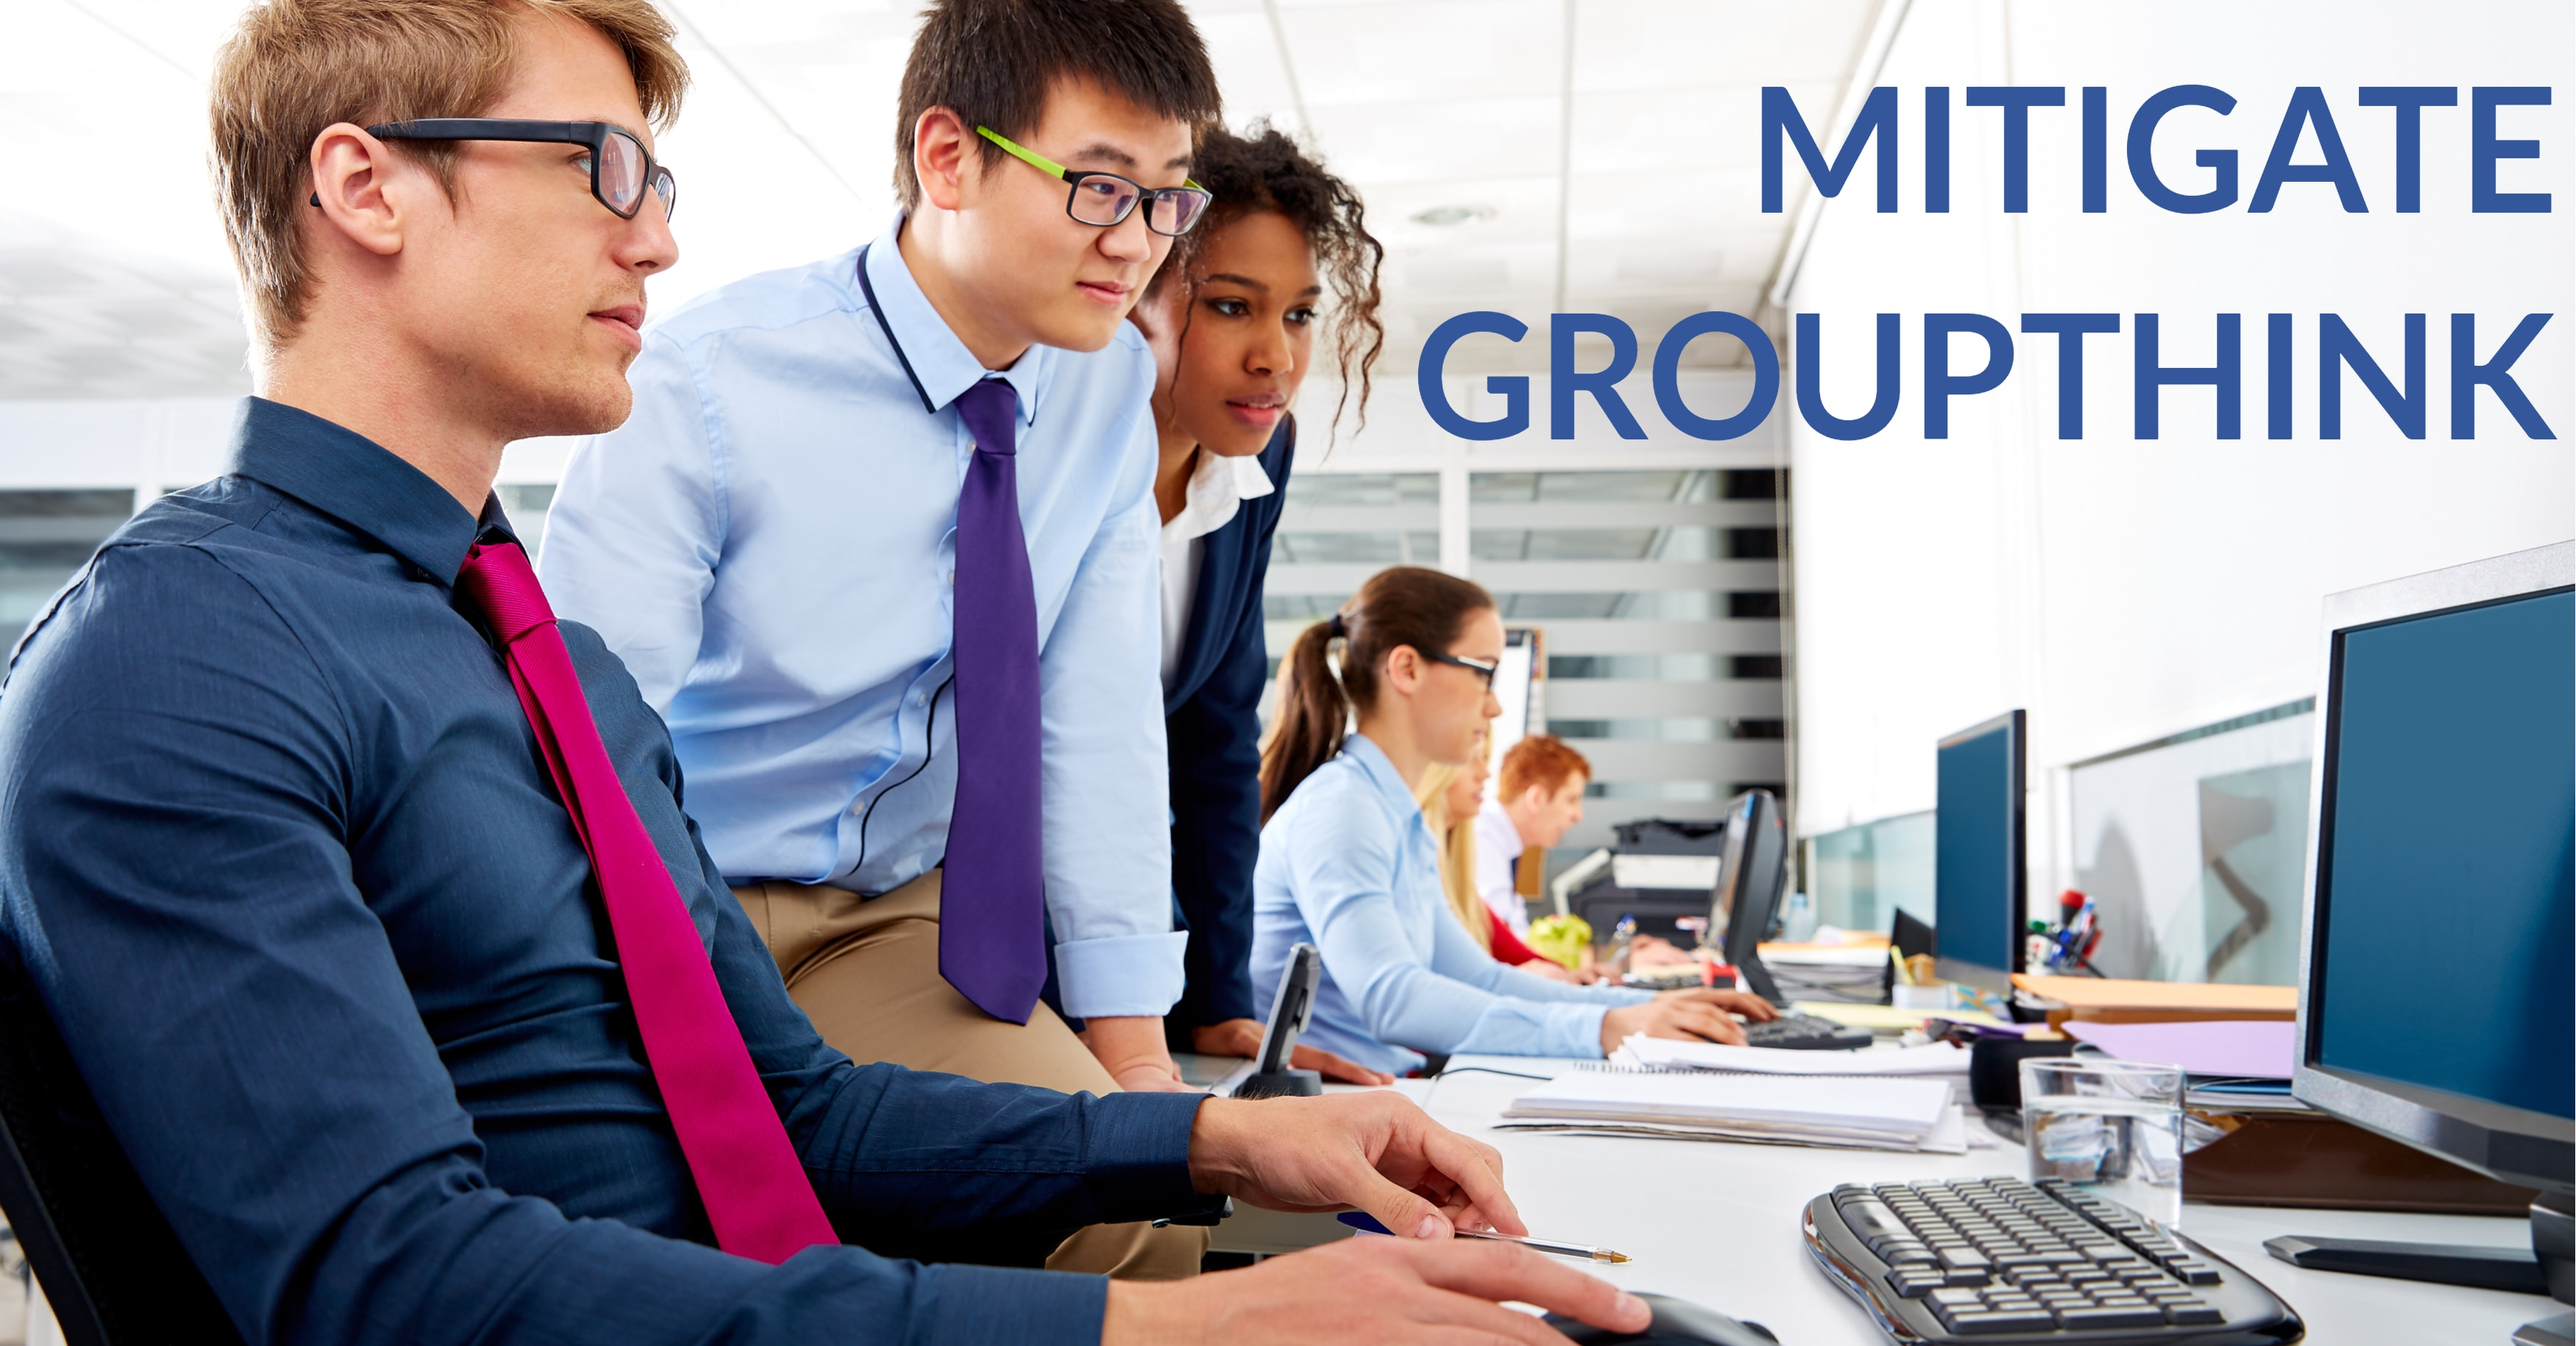 Mitigating Groupthink in Your Software Project